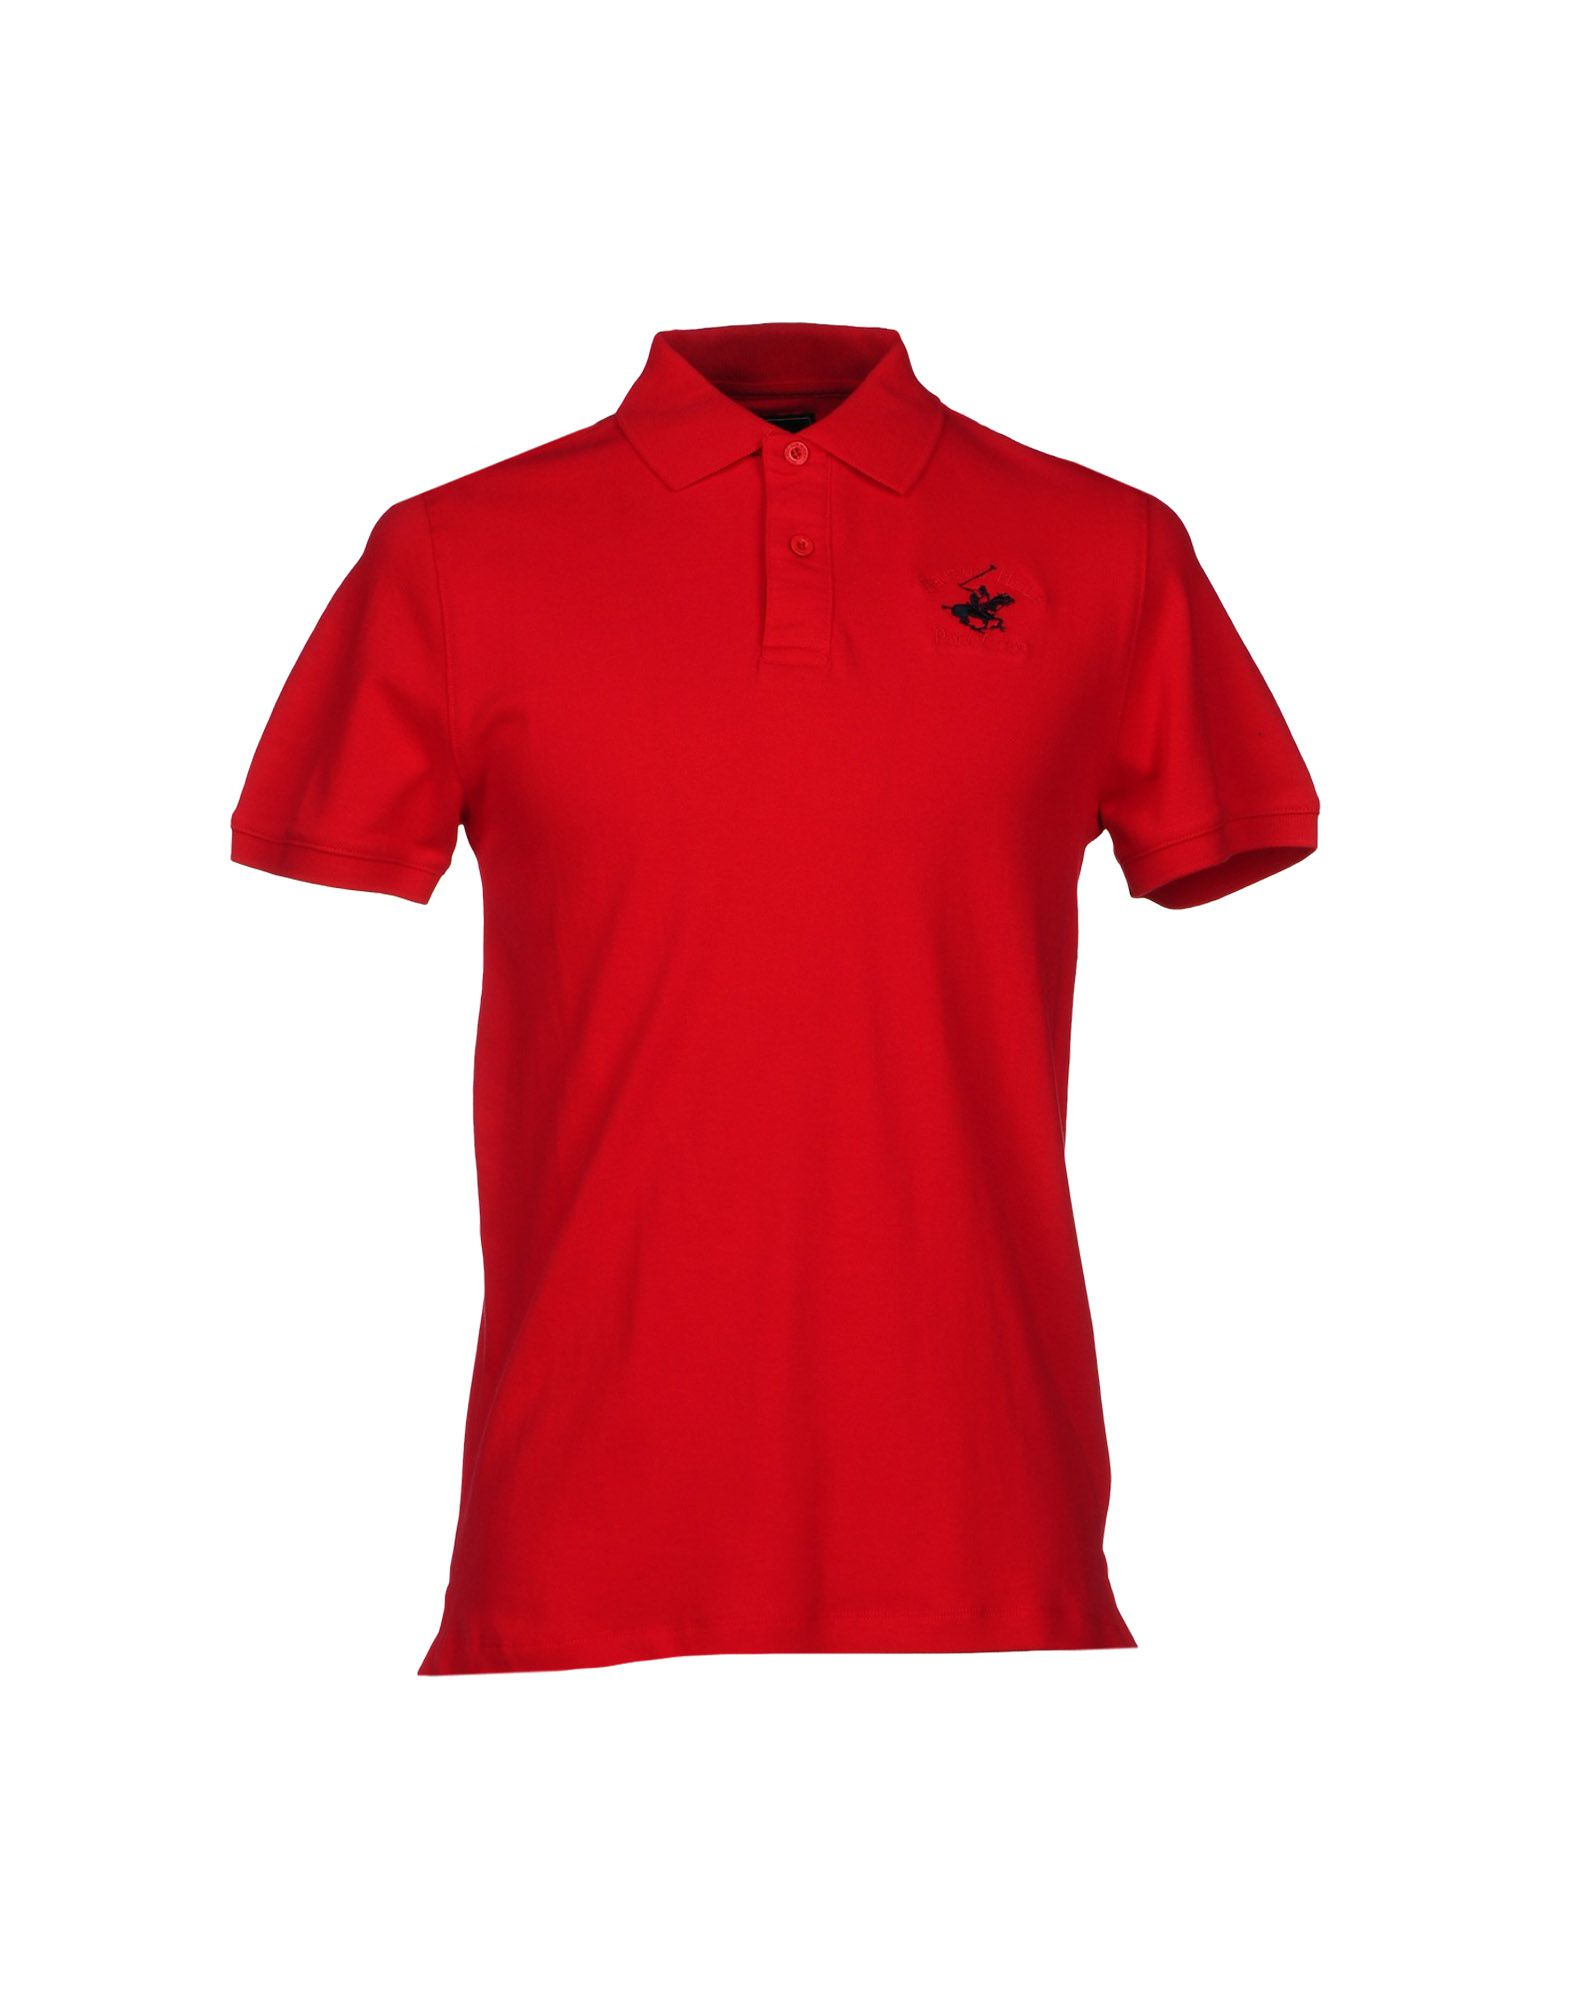 Lyst - Beverly Hills Polo Club Polo Shirt in Red for Men